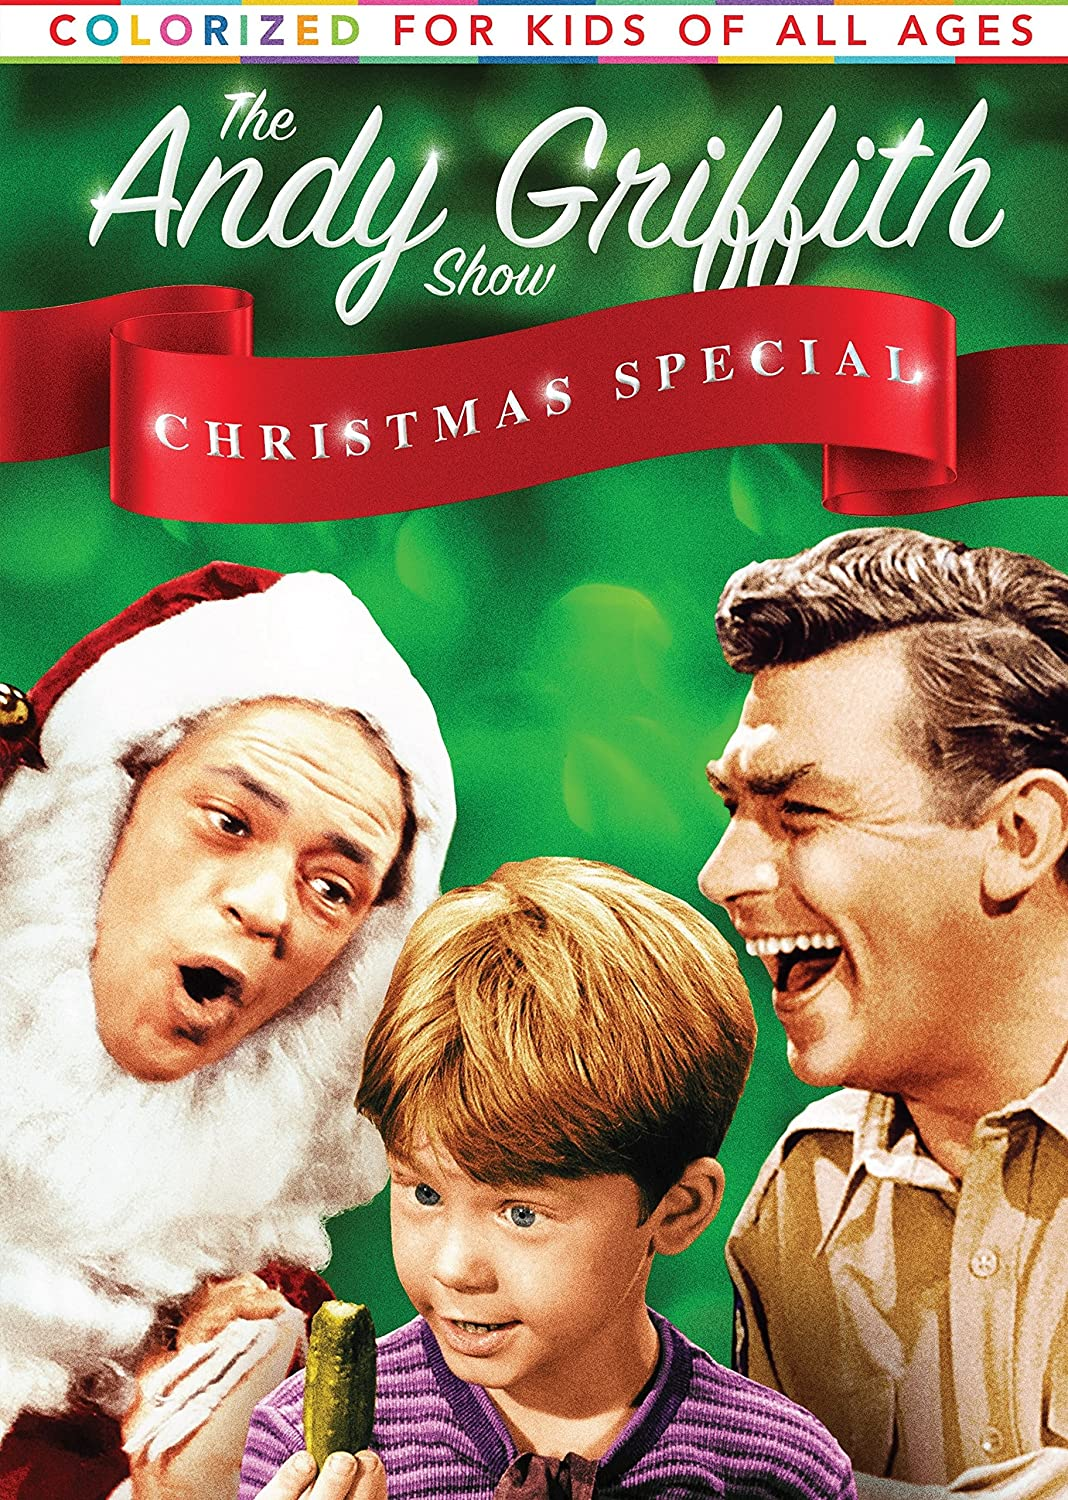 Christmas Special.Amazon Com The Andy Griffith Show Christmas Special Andy